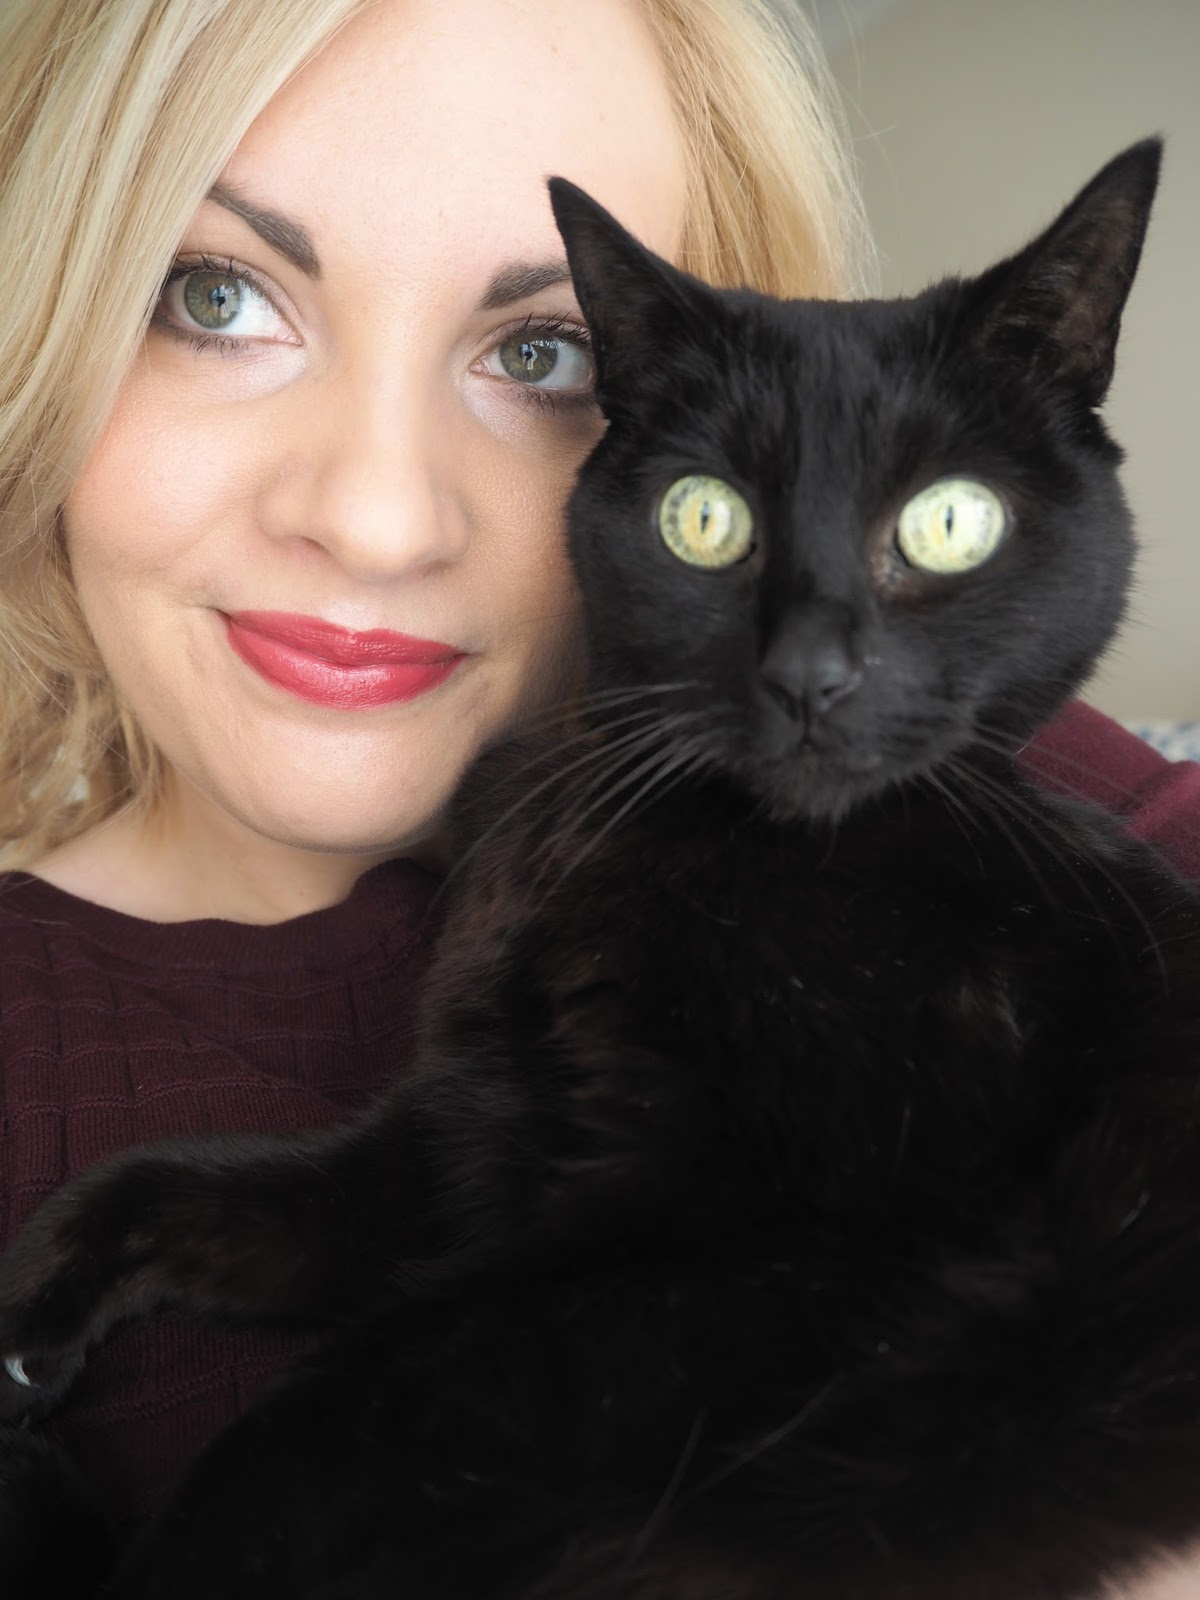 Happy 19th Birthday Mandy!, Katie Kirk Loves, UK Blogger, Lifestyle Blogger, Cat Lovers, Black Cat, I love my cat,